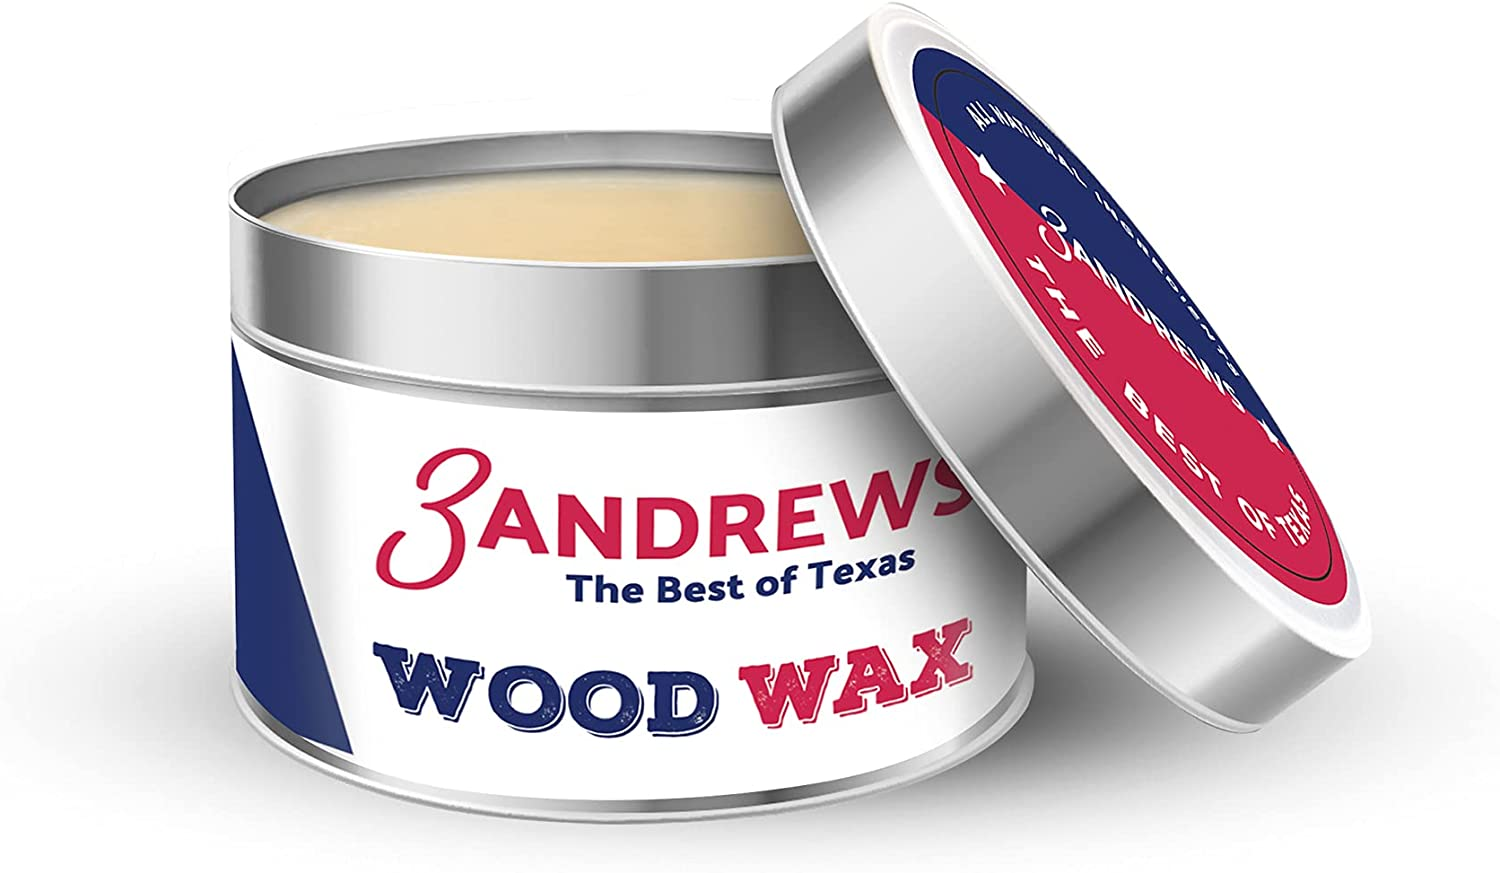 3 Andrews - Natural Beeswax Wood Polish, Wood Floor Cleaner and Furniture Polish, Wood Wax for Wood Countertop, Cutting Board, and Unfinished Wood Furniture, 7oz